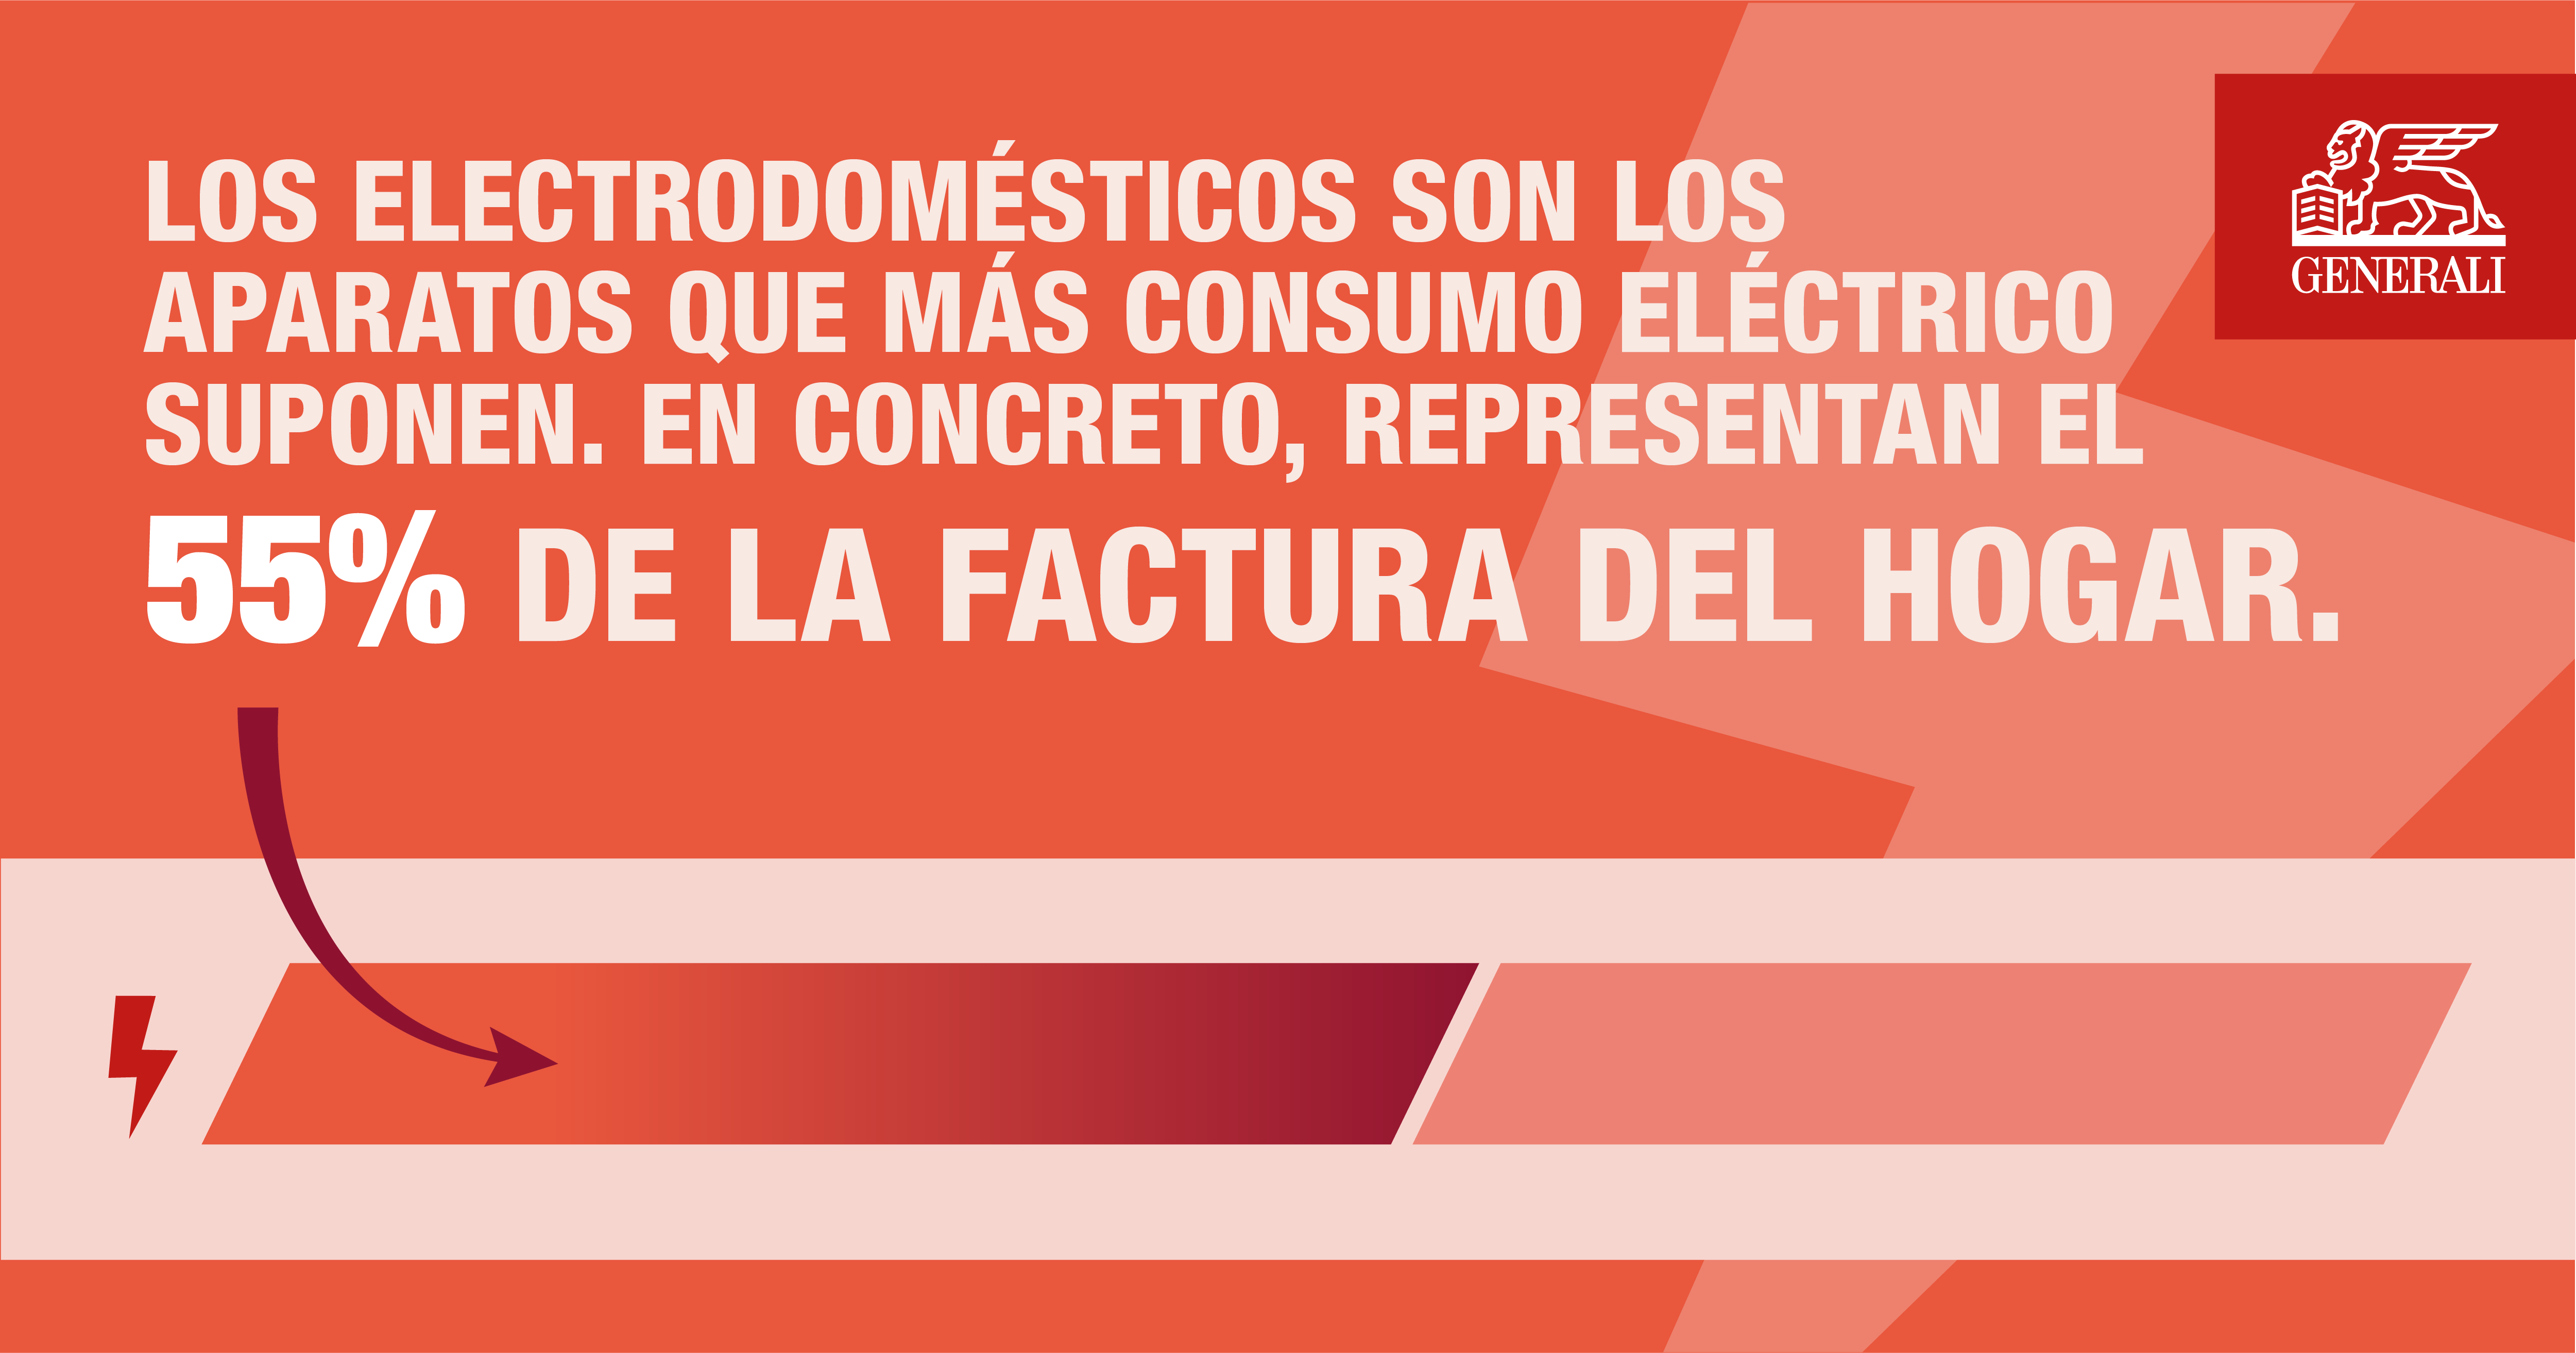 Generali_How to choose household appliances_Mini_Spain-02.png